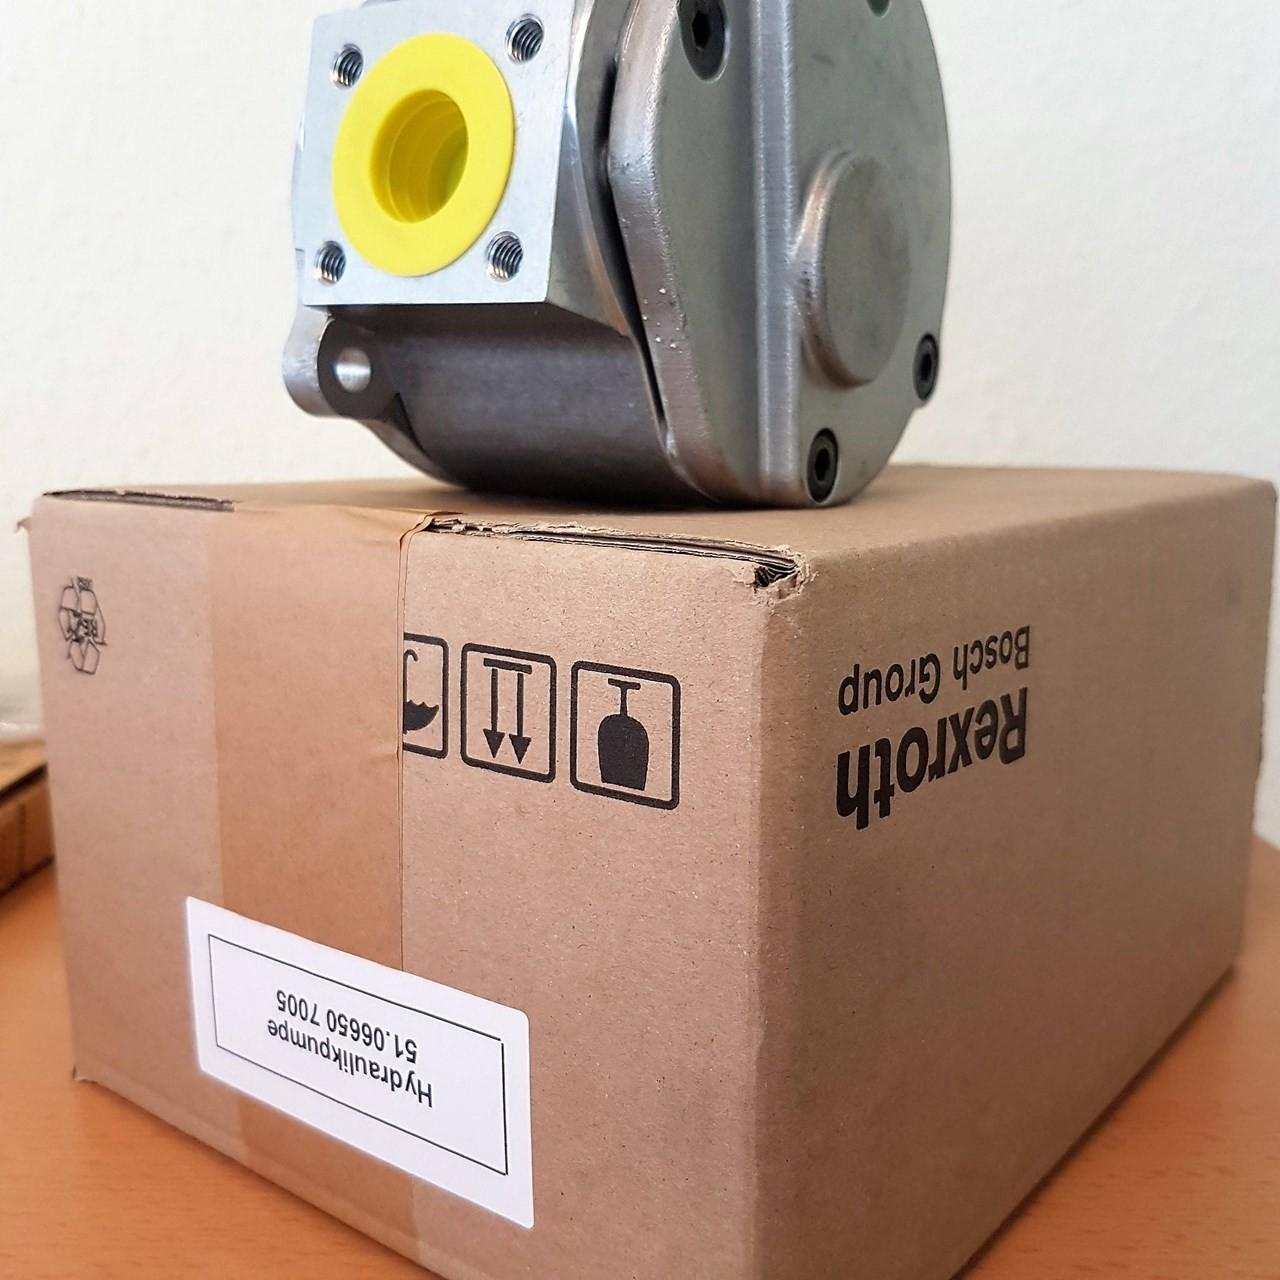 China bosch Rexroth a4vg hydraulic pump A4VG28 A4VG56 A4VG71ep A4VG90 A4VG125 A4VG180 A4VG40 on sale